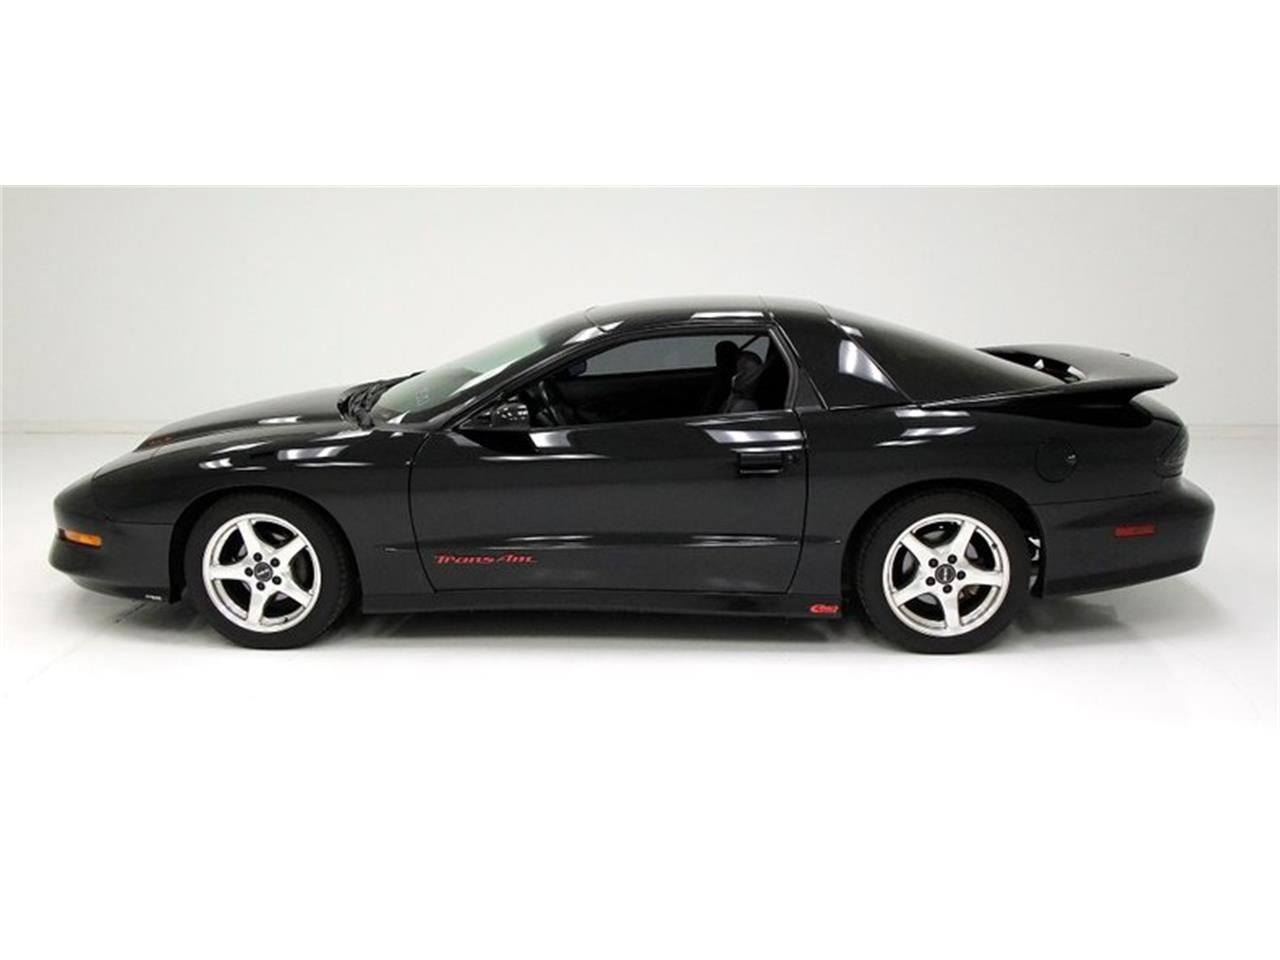 1997 Pontiac Firebird Trans Am (CC-1220712) for sale in Morgantown, Pennsylvania